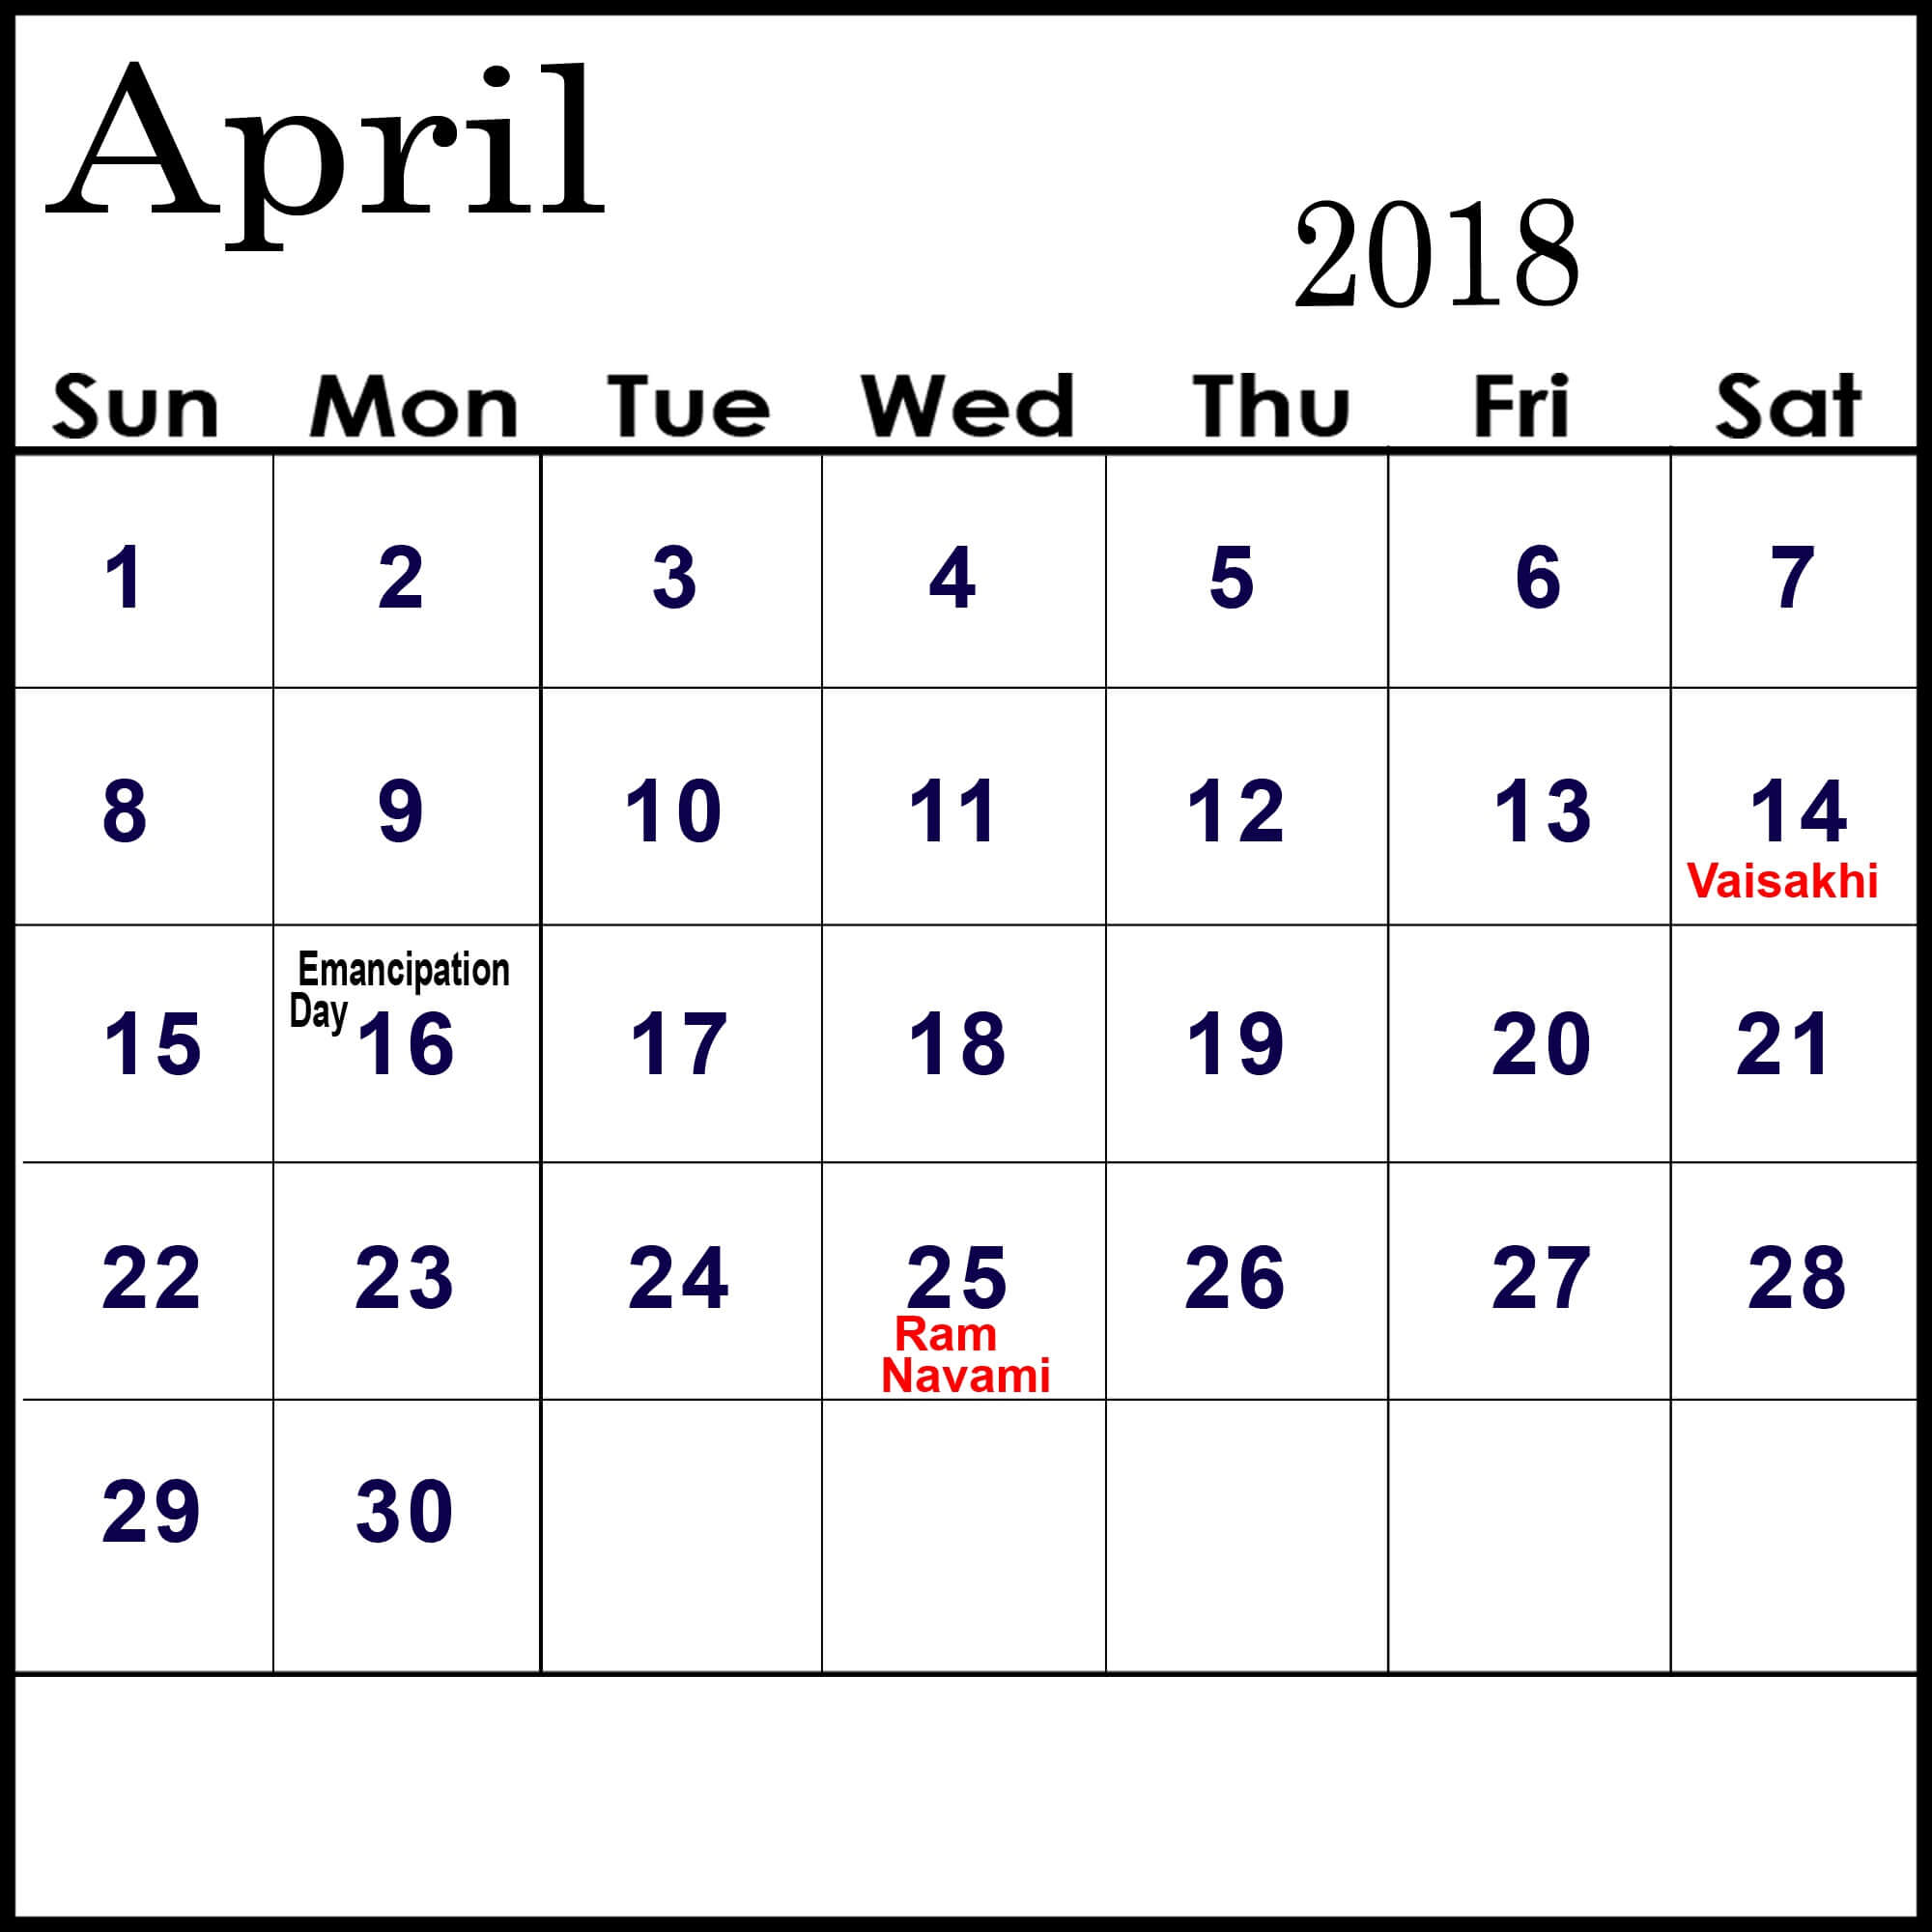 April Calendar Dates : April calendar with holidays in usa uk canada india